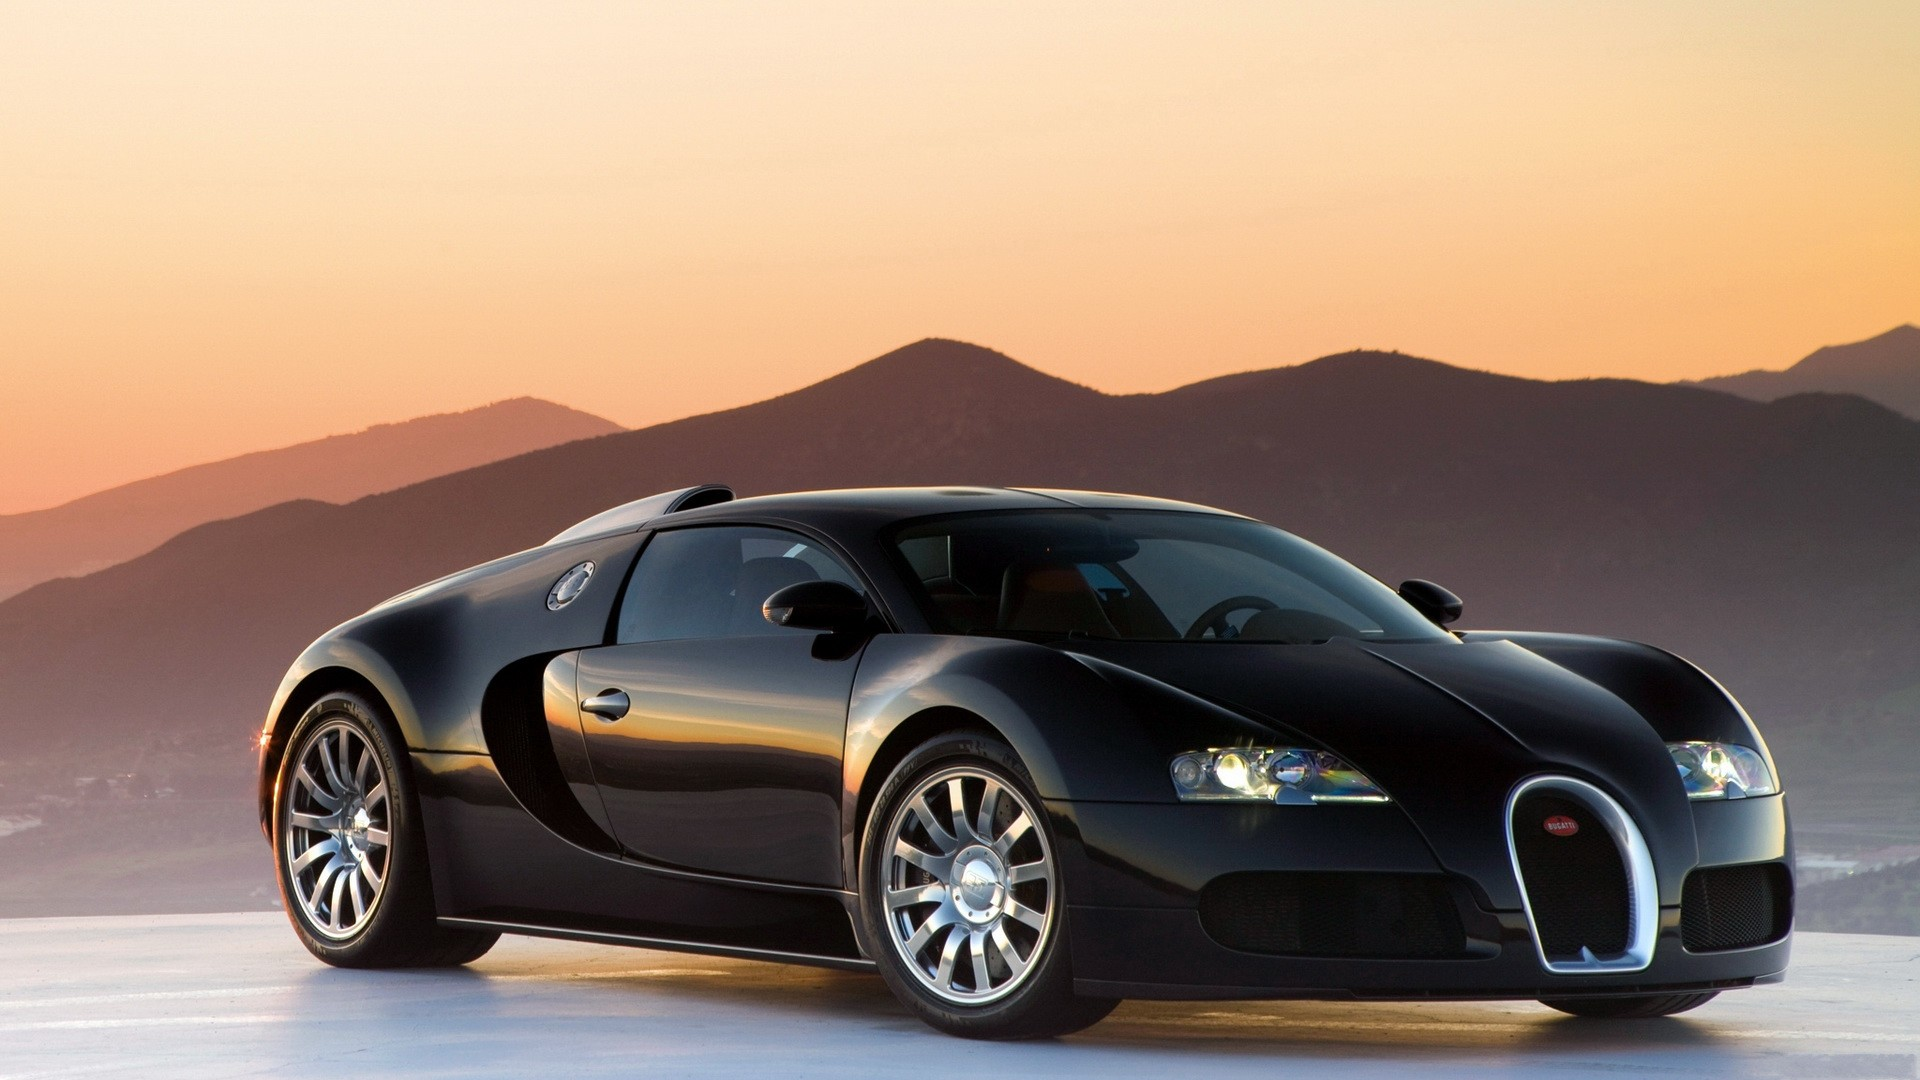 Black Bugatti Veyron Image Wallpaper Pc Wallpaper 1920x1080